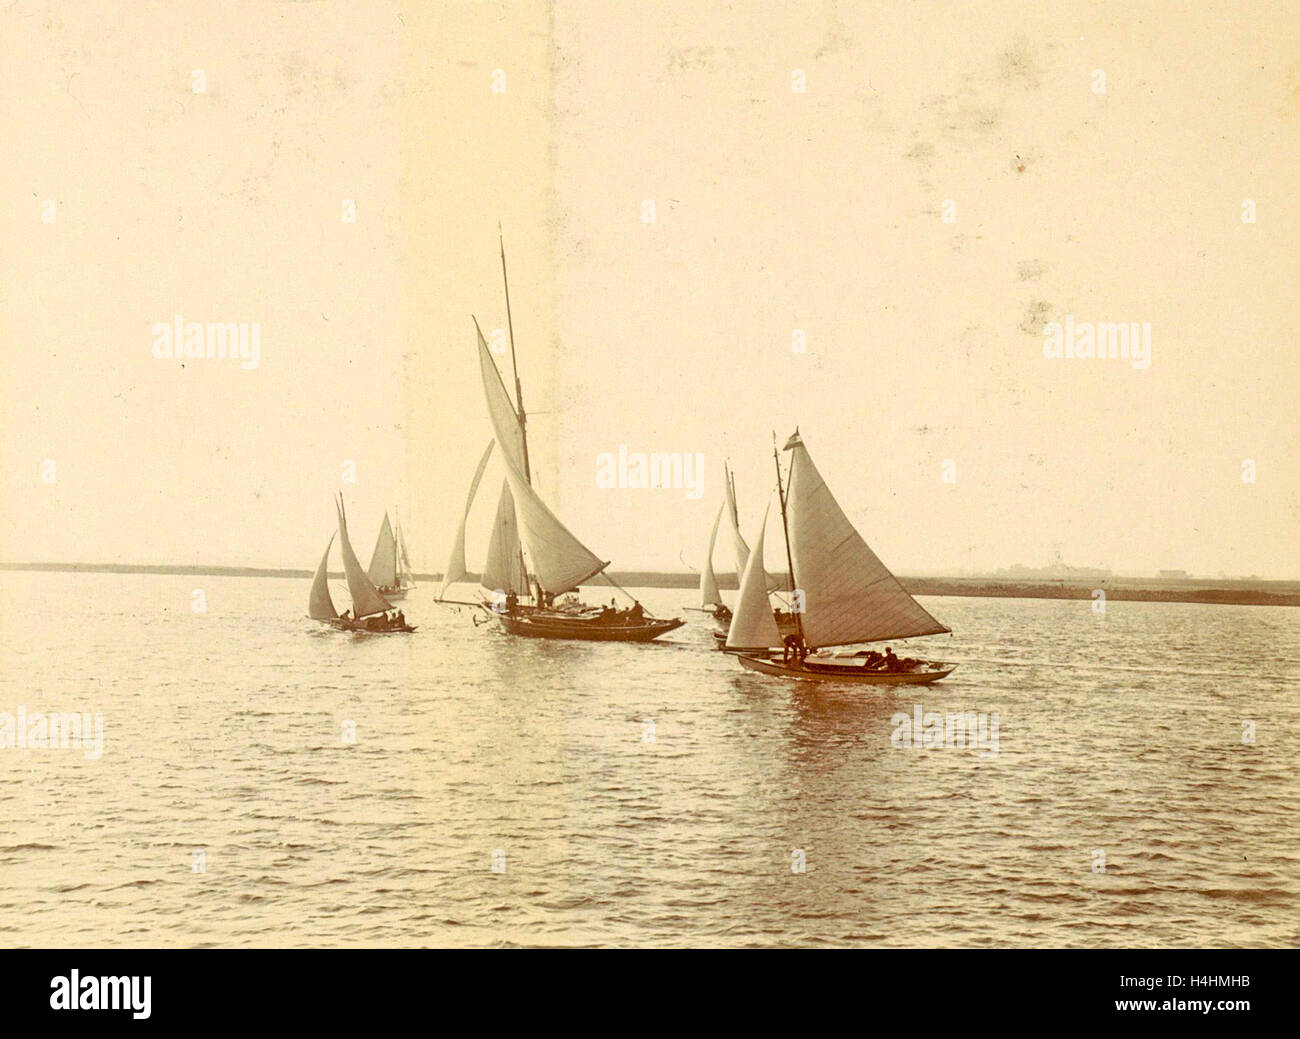 Sailing vessels on the water, Anonymous, c. 1900 - c. 1910 - Stock Image